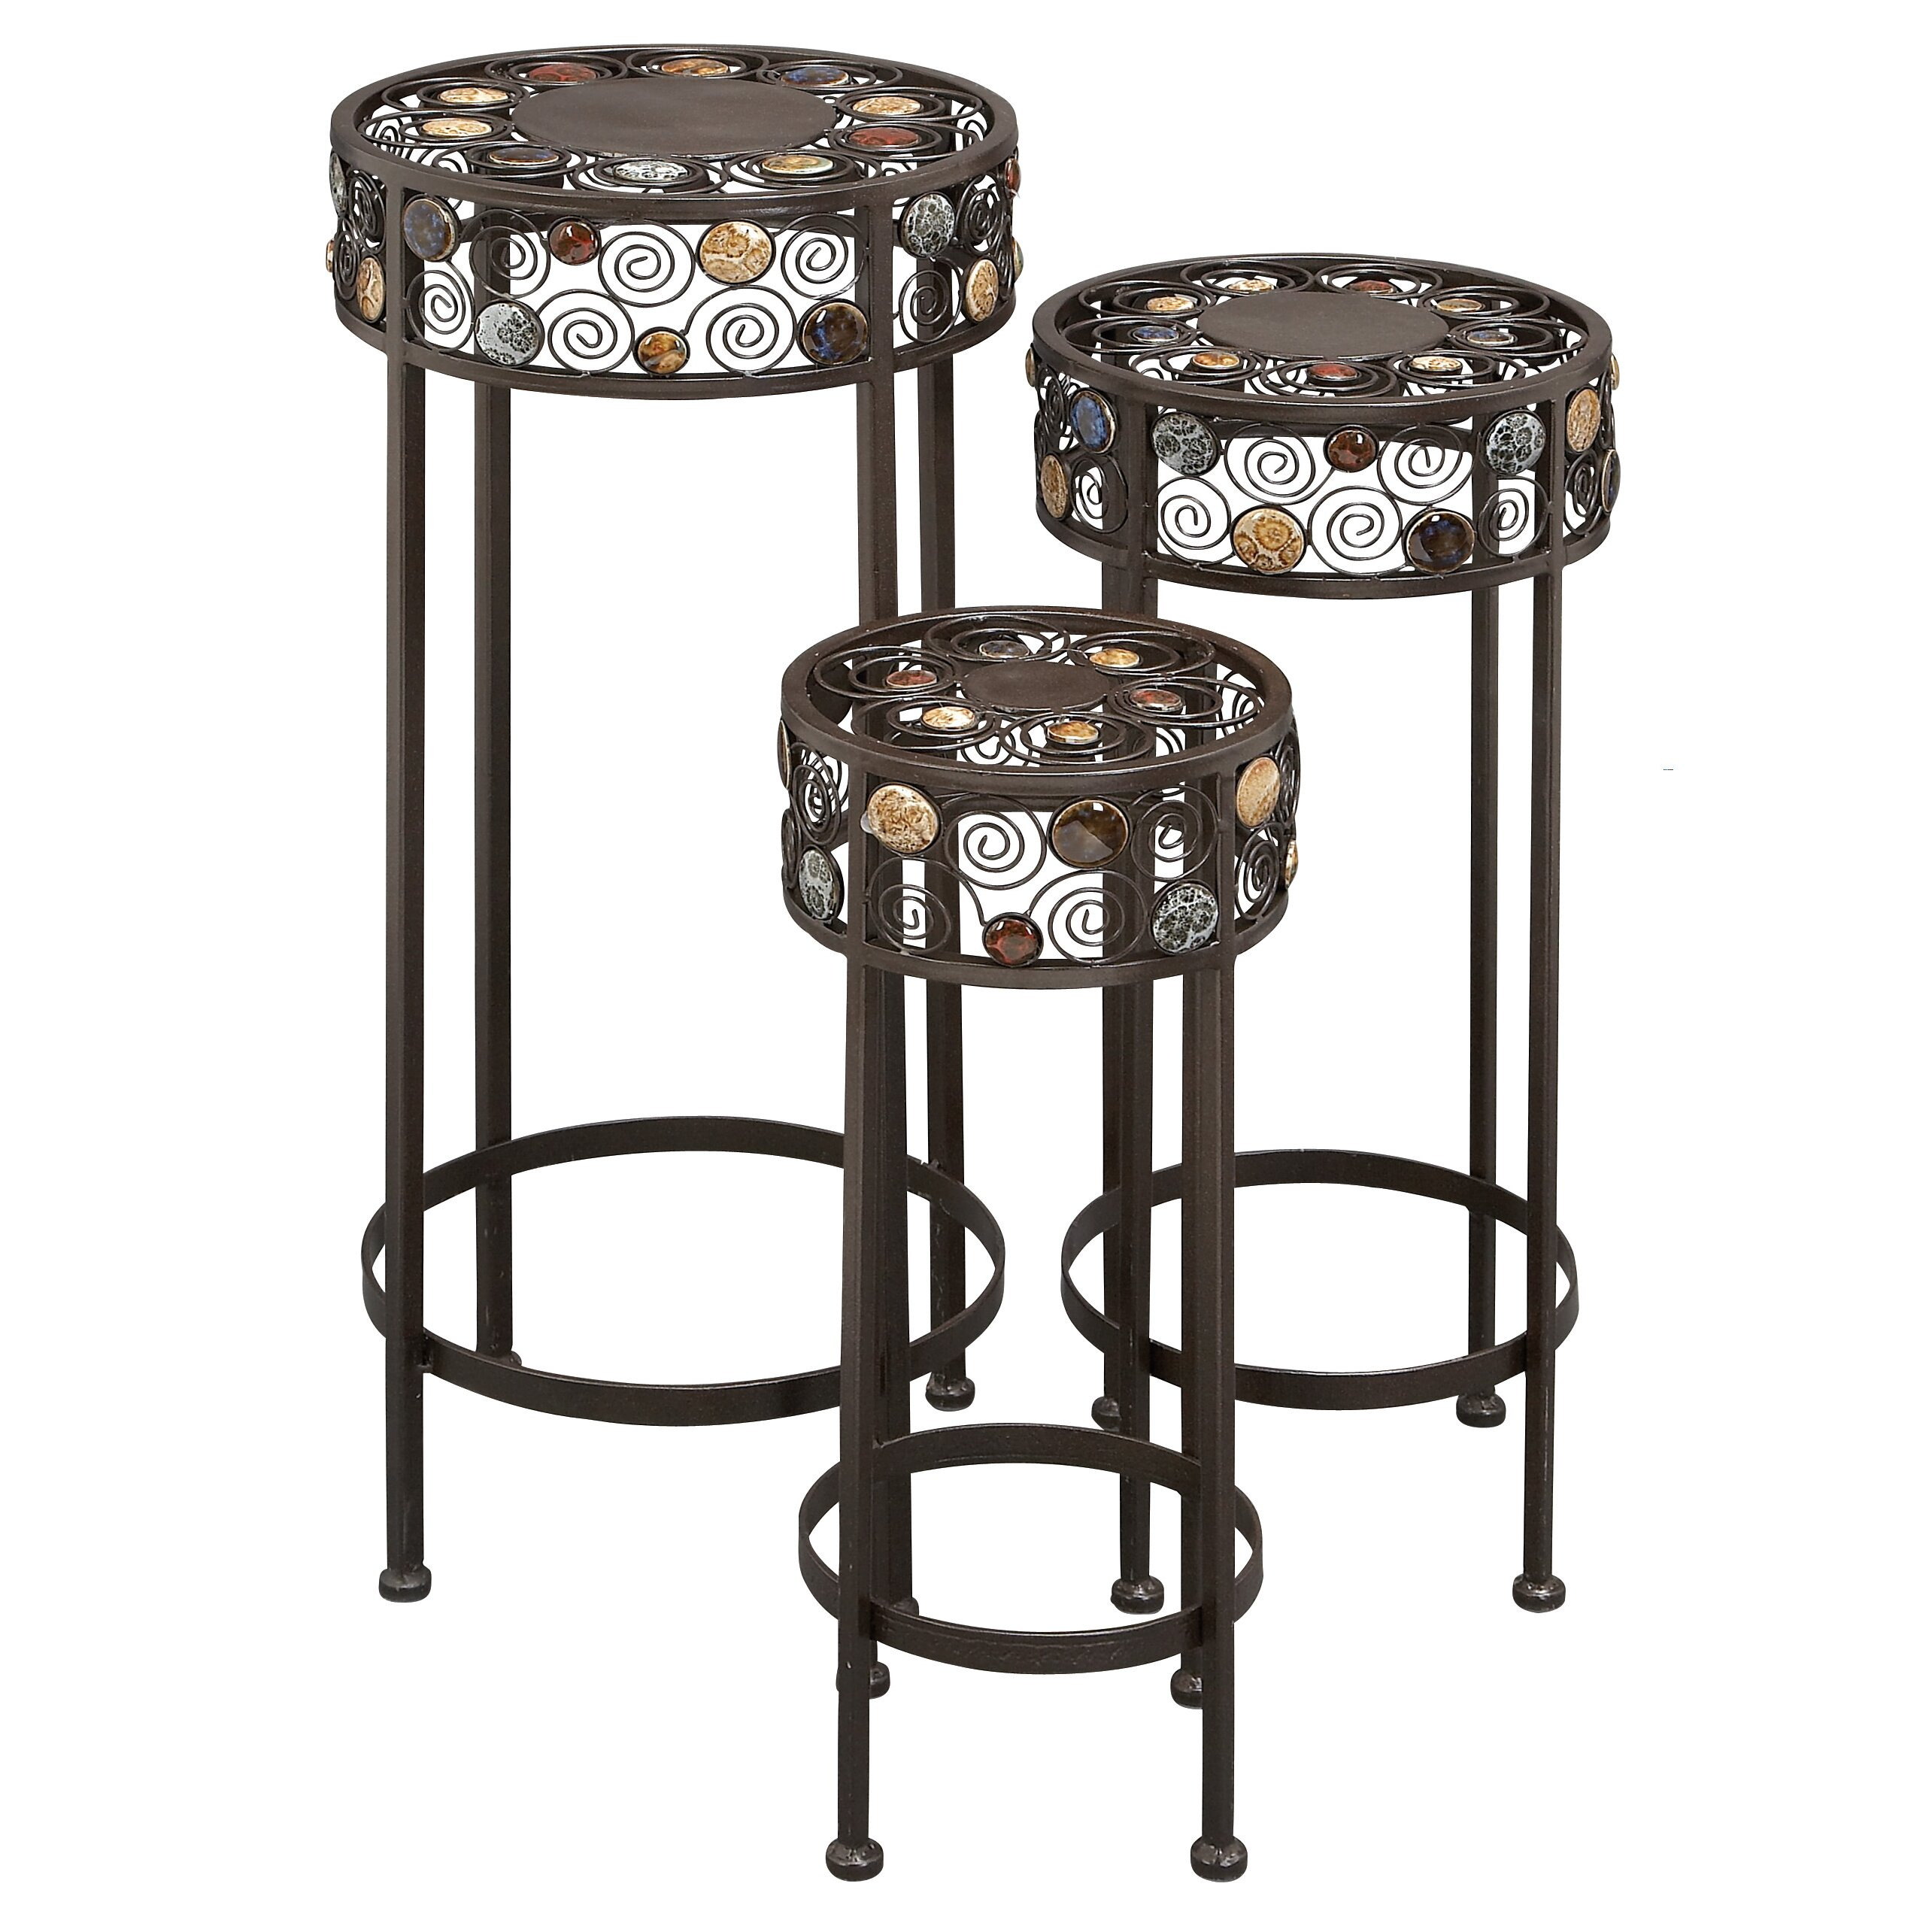 abchomecollection 3 piece ornate wrought iron plant stand set reviews wayfair. Black Bedroom Furniture Sets. Home Design Ideas